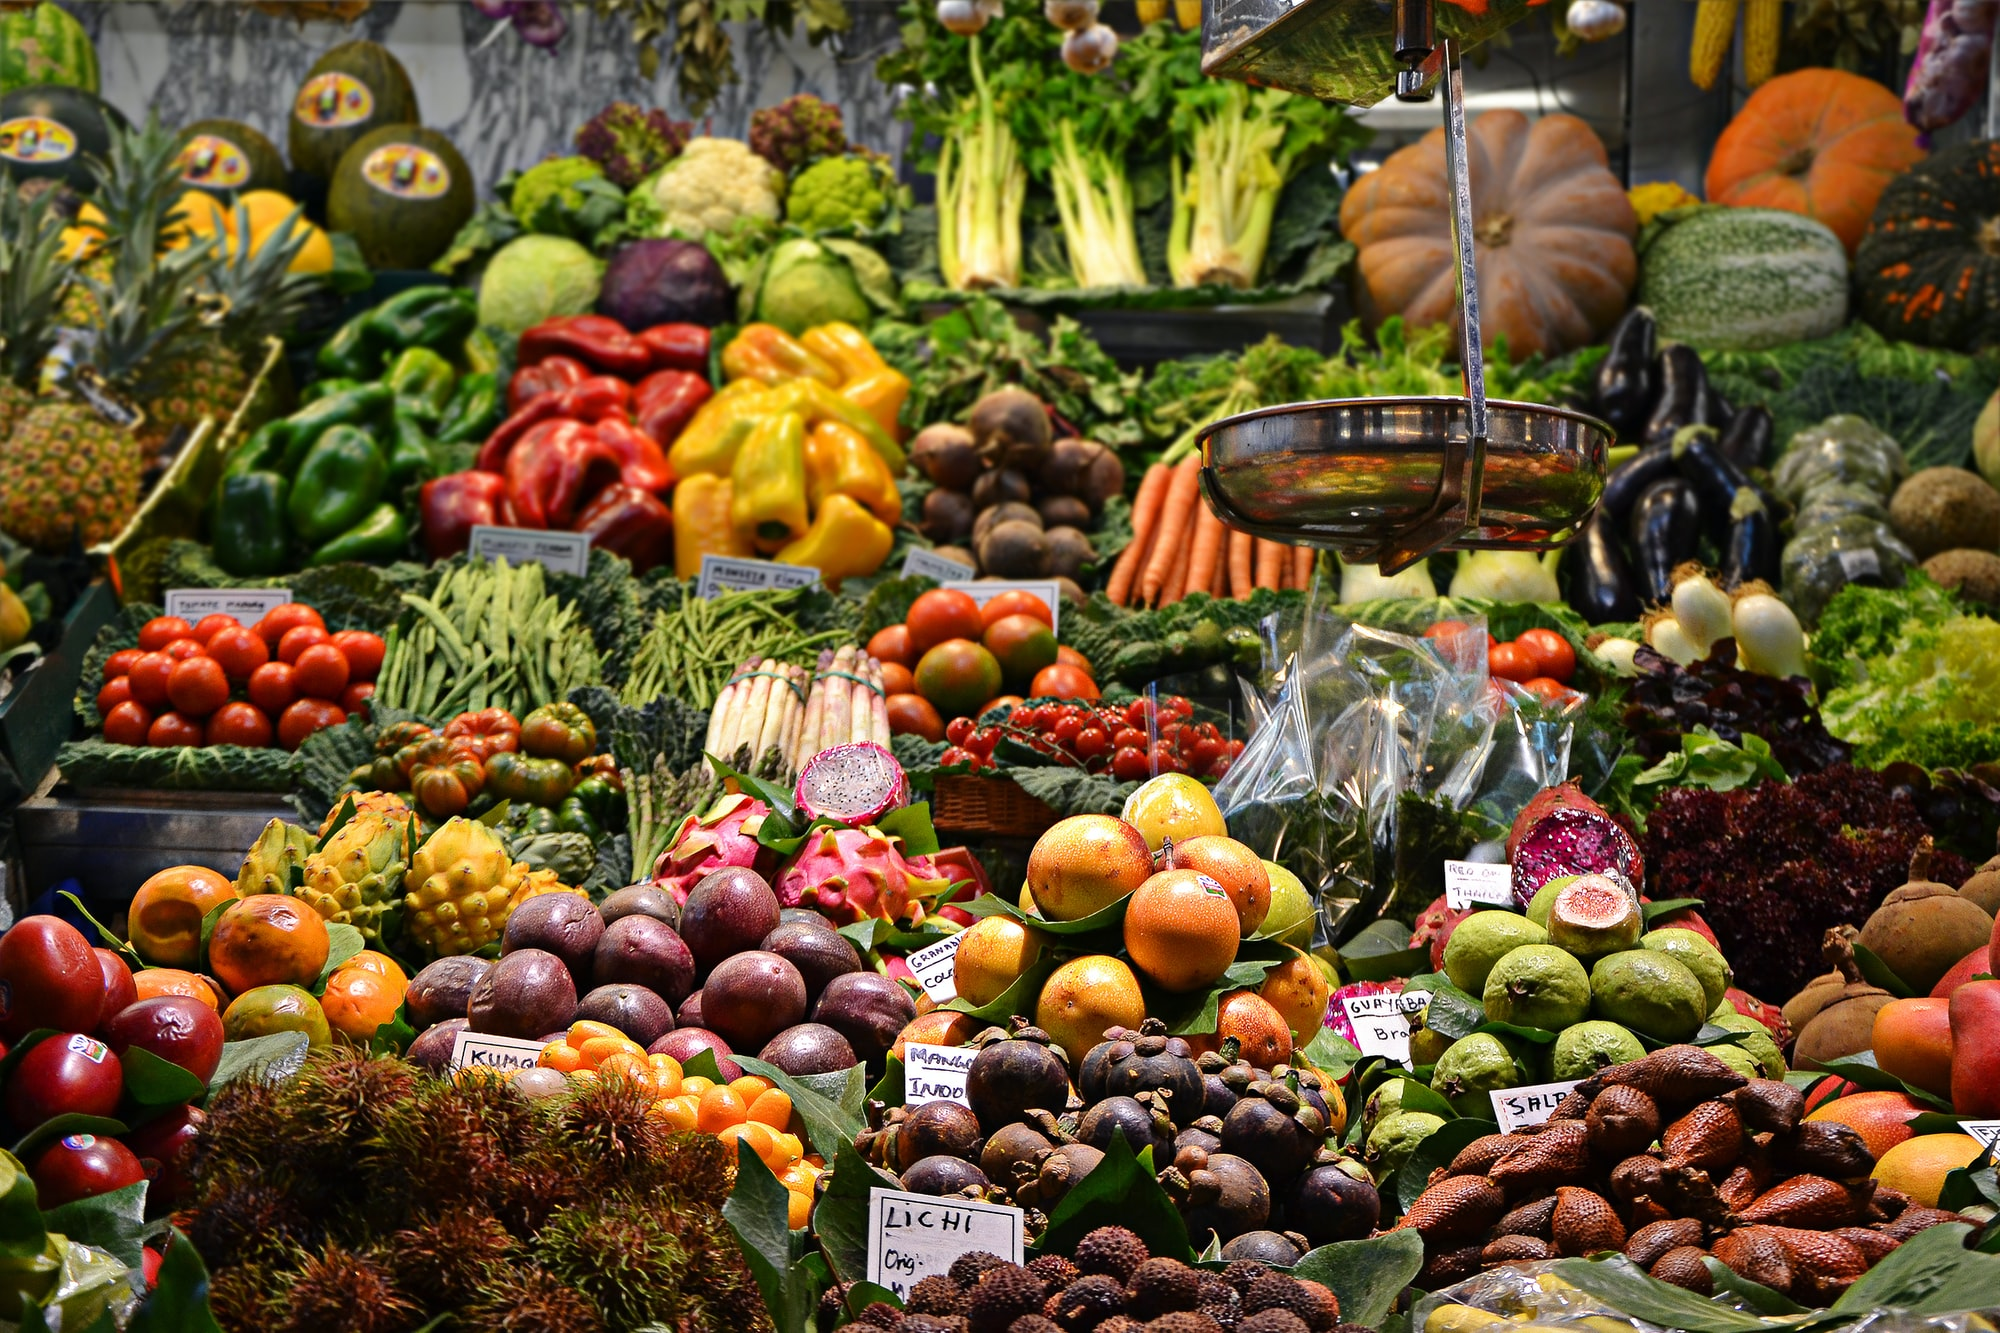 Food waste and processed foods